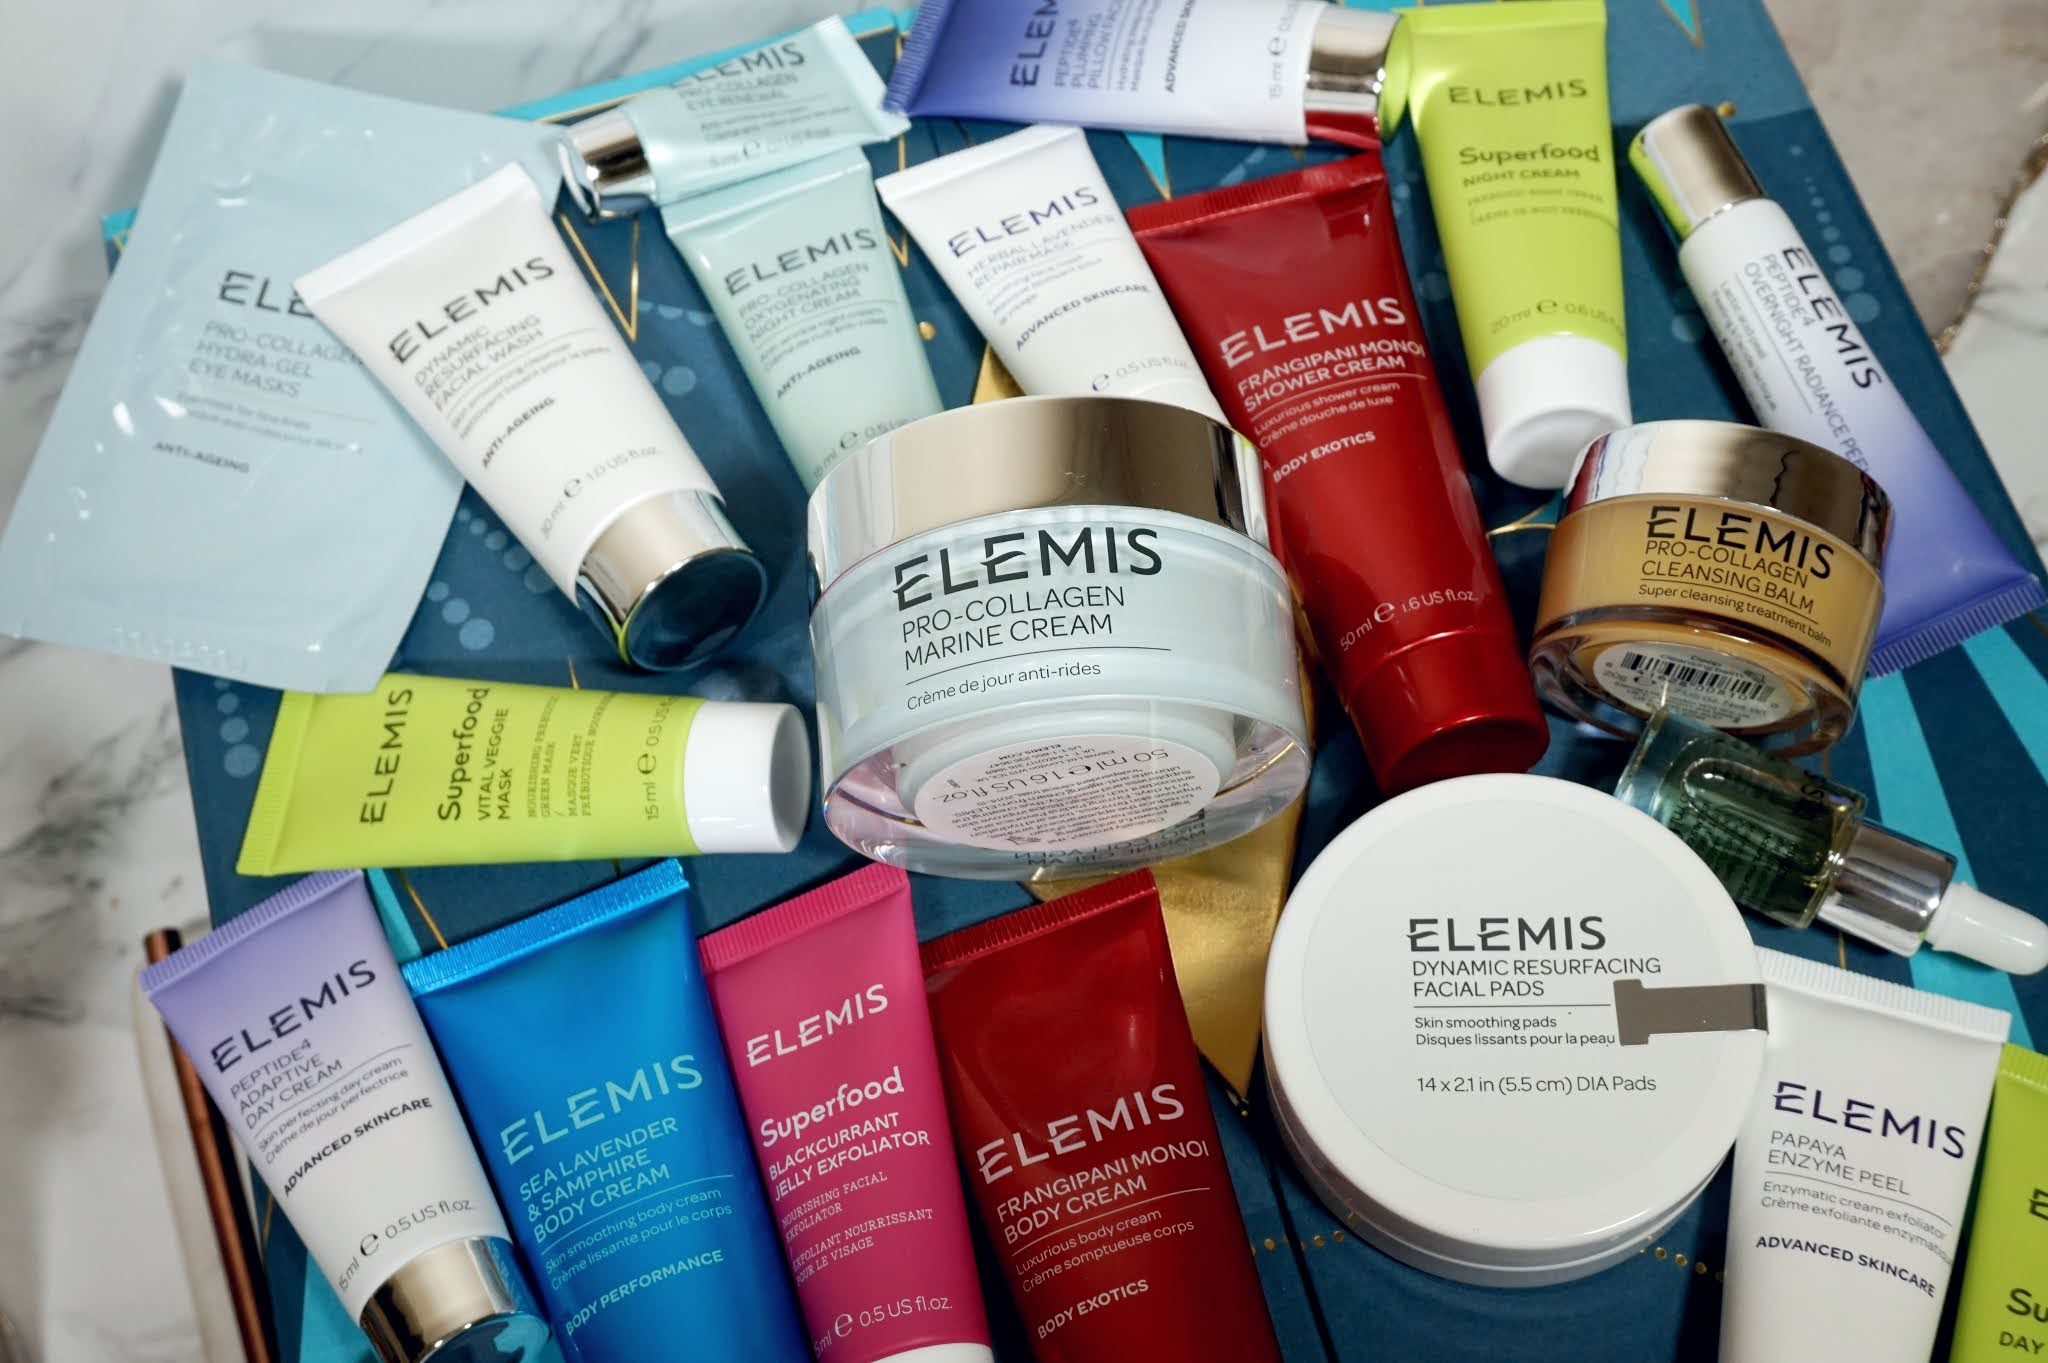 Elemis 25 Days of Spectacular Skin Advent Calendar Review